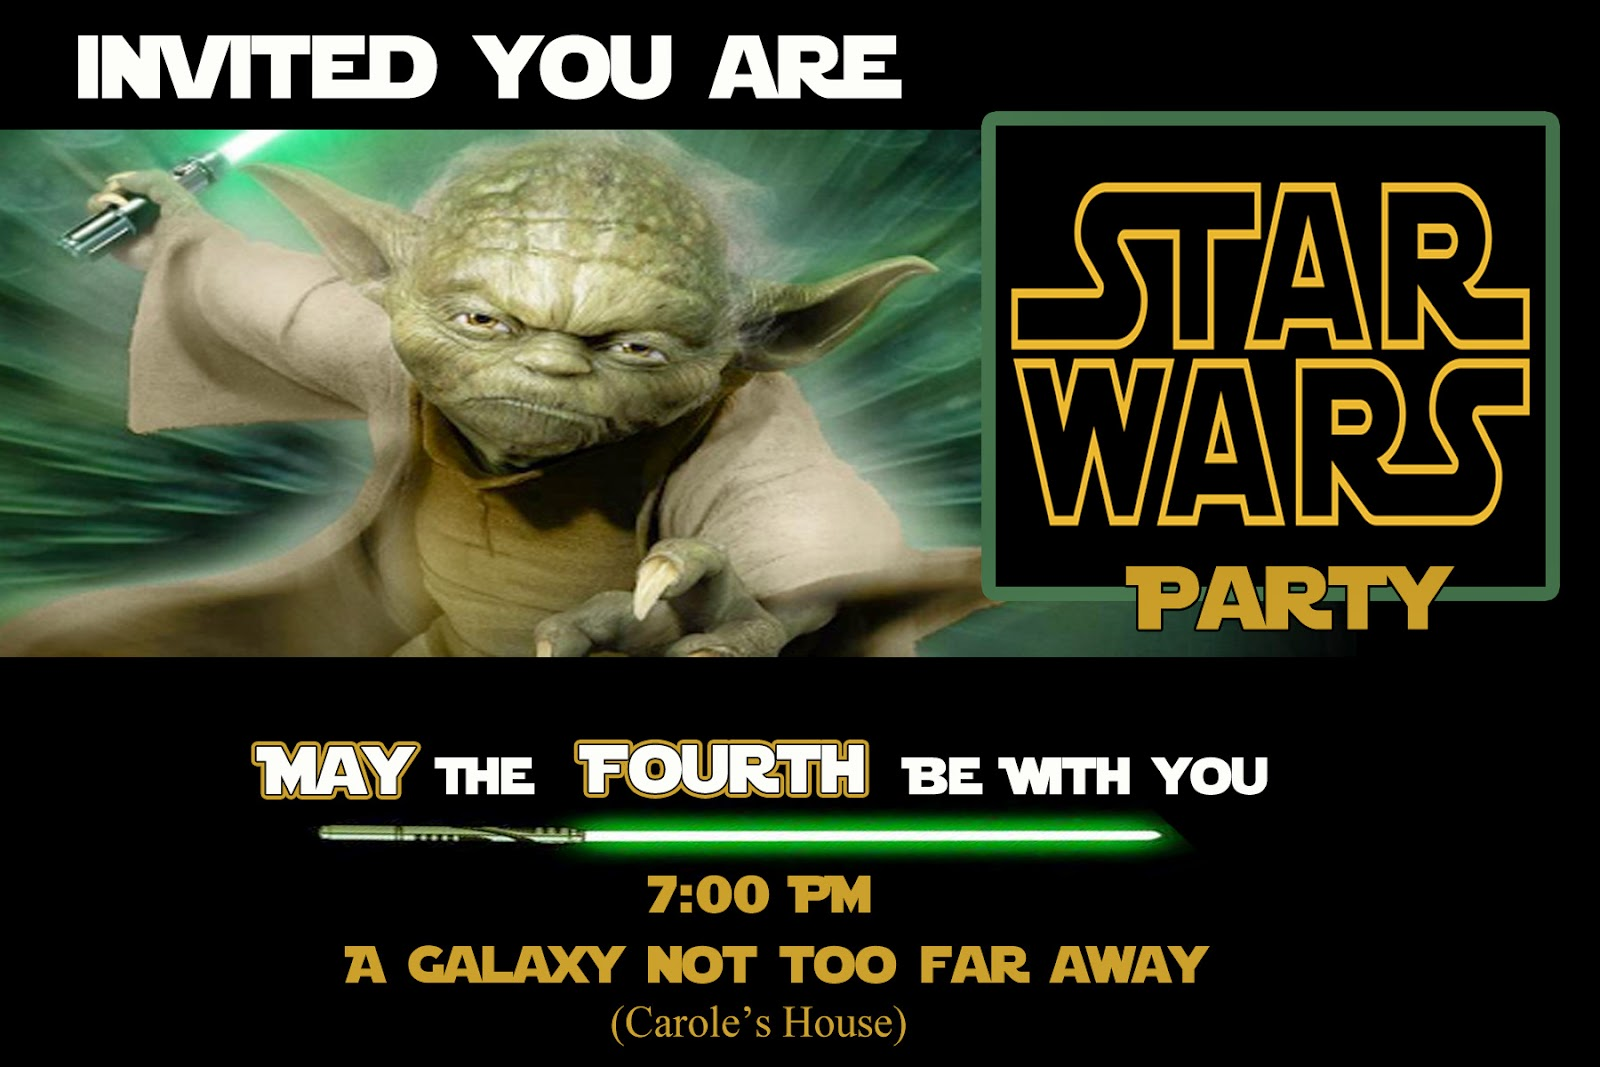 Invite and Delight May the Fourth Be With You Star Wars Party – Party Invitation Sites